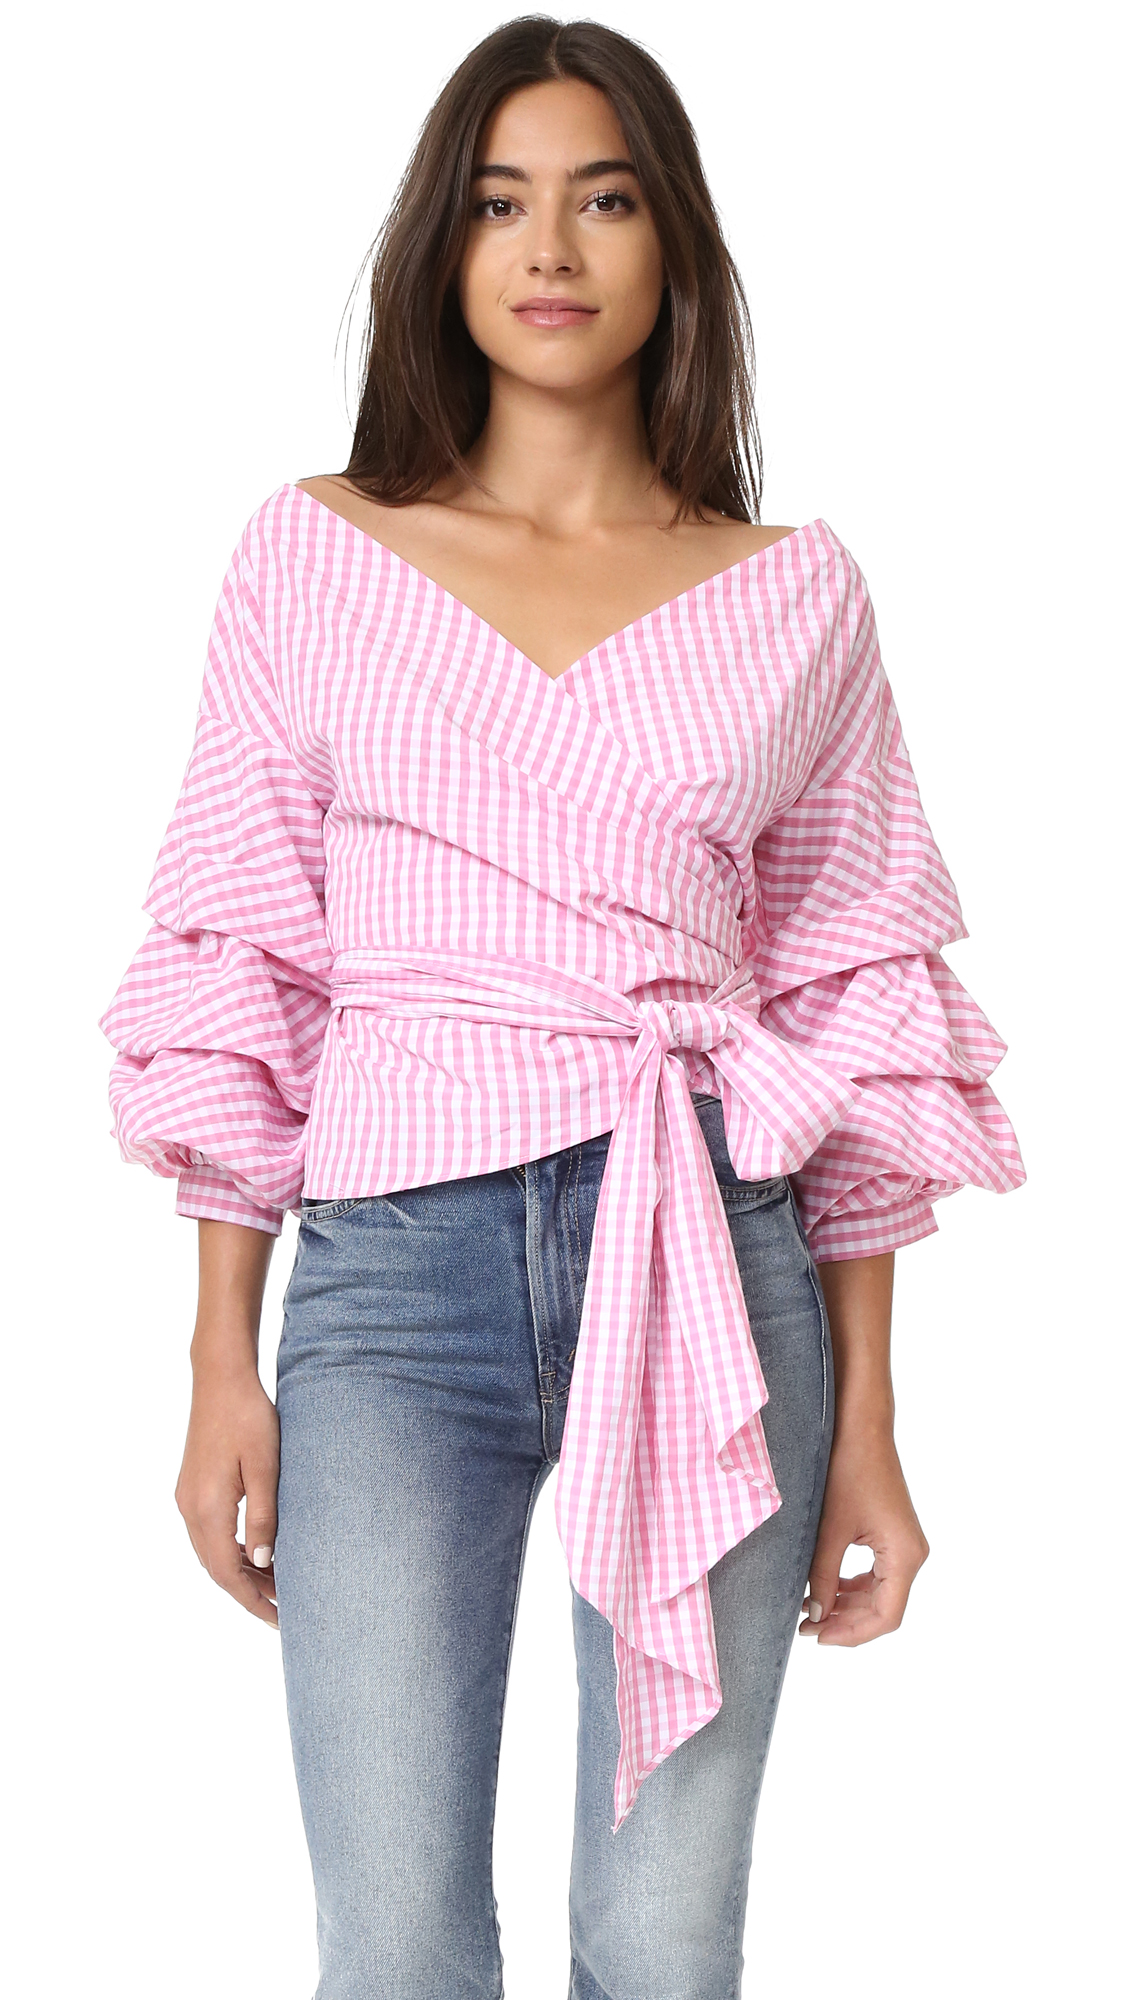 ONE by Modern Vintage Top - Checked Pink